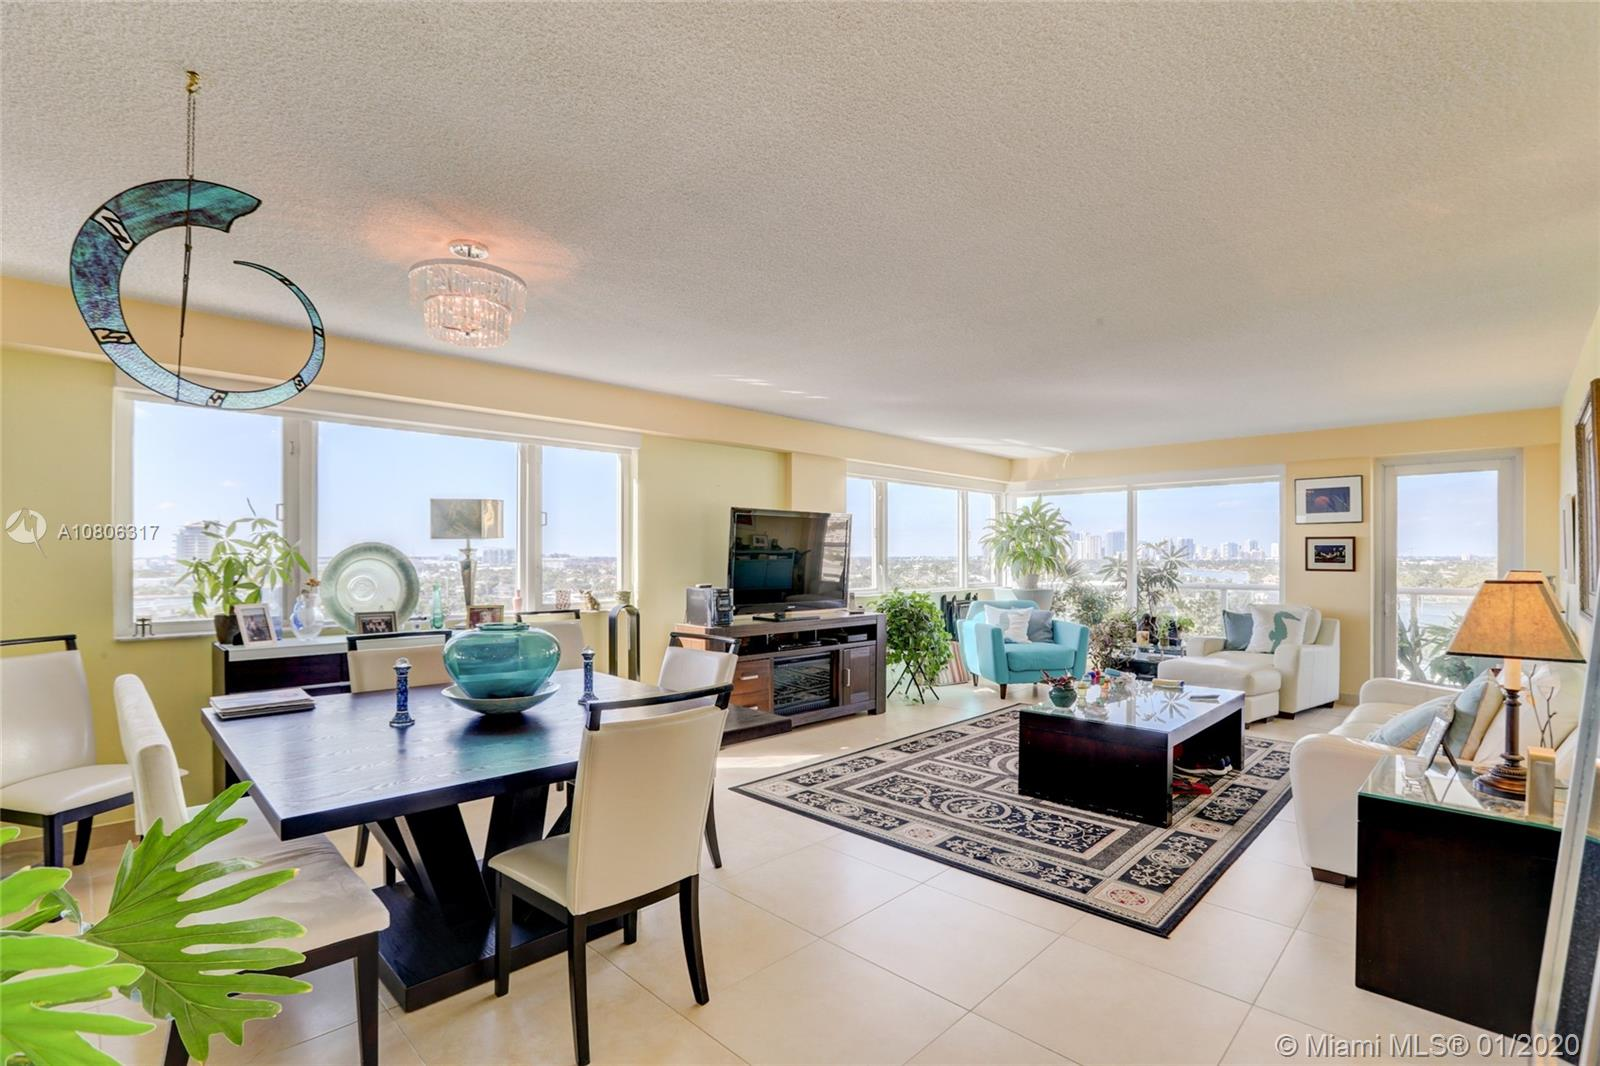 This is a luxury condo in the  Harbour Beach area, less than one block to Ft. Lauderdale Beach and the Marriot Hotel. The building is located in East Ft. Lauderdale on Lake Mayan. This unit has an open kitchen and private balcony. This large 2/2 unit is move-in ready, Newly remodeled bathrooms and kitchen.  with full size laundry. Panaramic intercoastal views throughout apartment. Includes on floor storage and one assigned covered parking spot. Second space available for a monthly fee.  Building has been renovated with new glass balconies, Impact windows and door. A large resort style community pool, common boat dock, gym, sauna, putting green and 24/7 security guard. Easy access to 595, I-95, US1 and Ft. Lauderdale Airport.